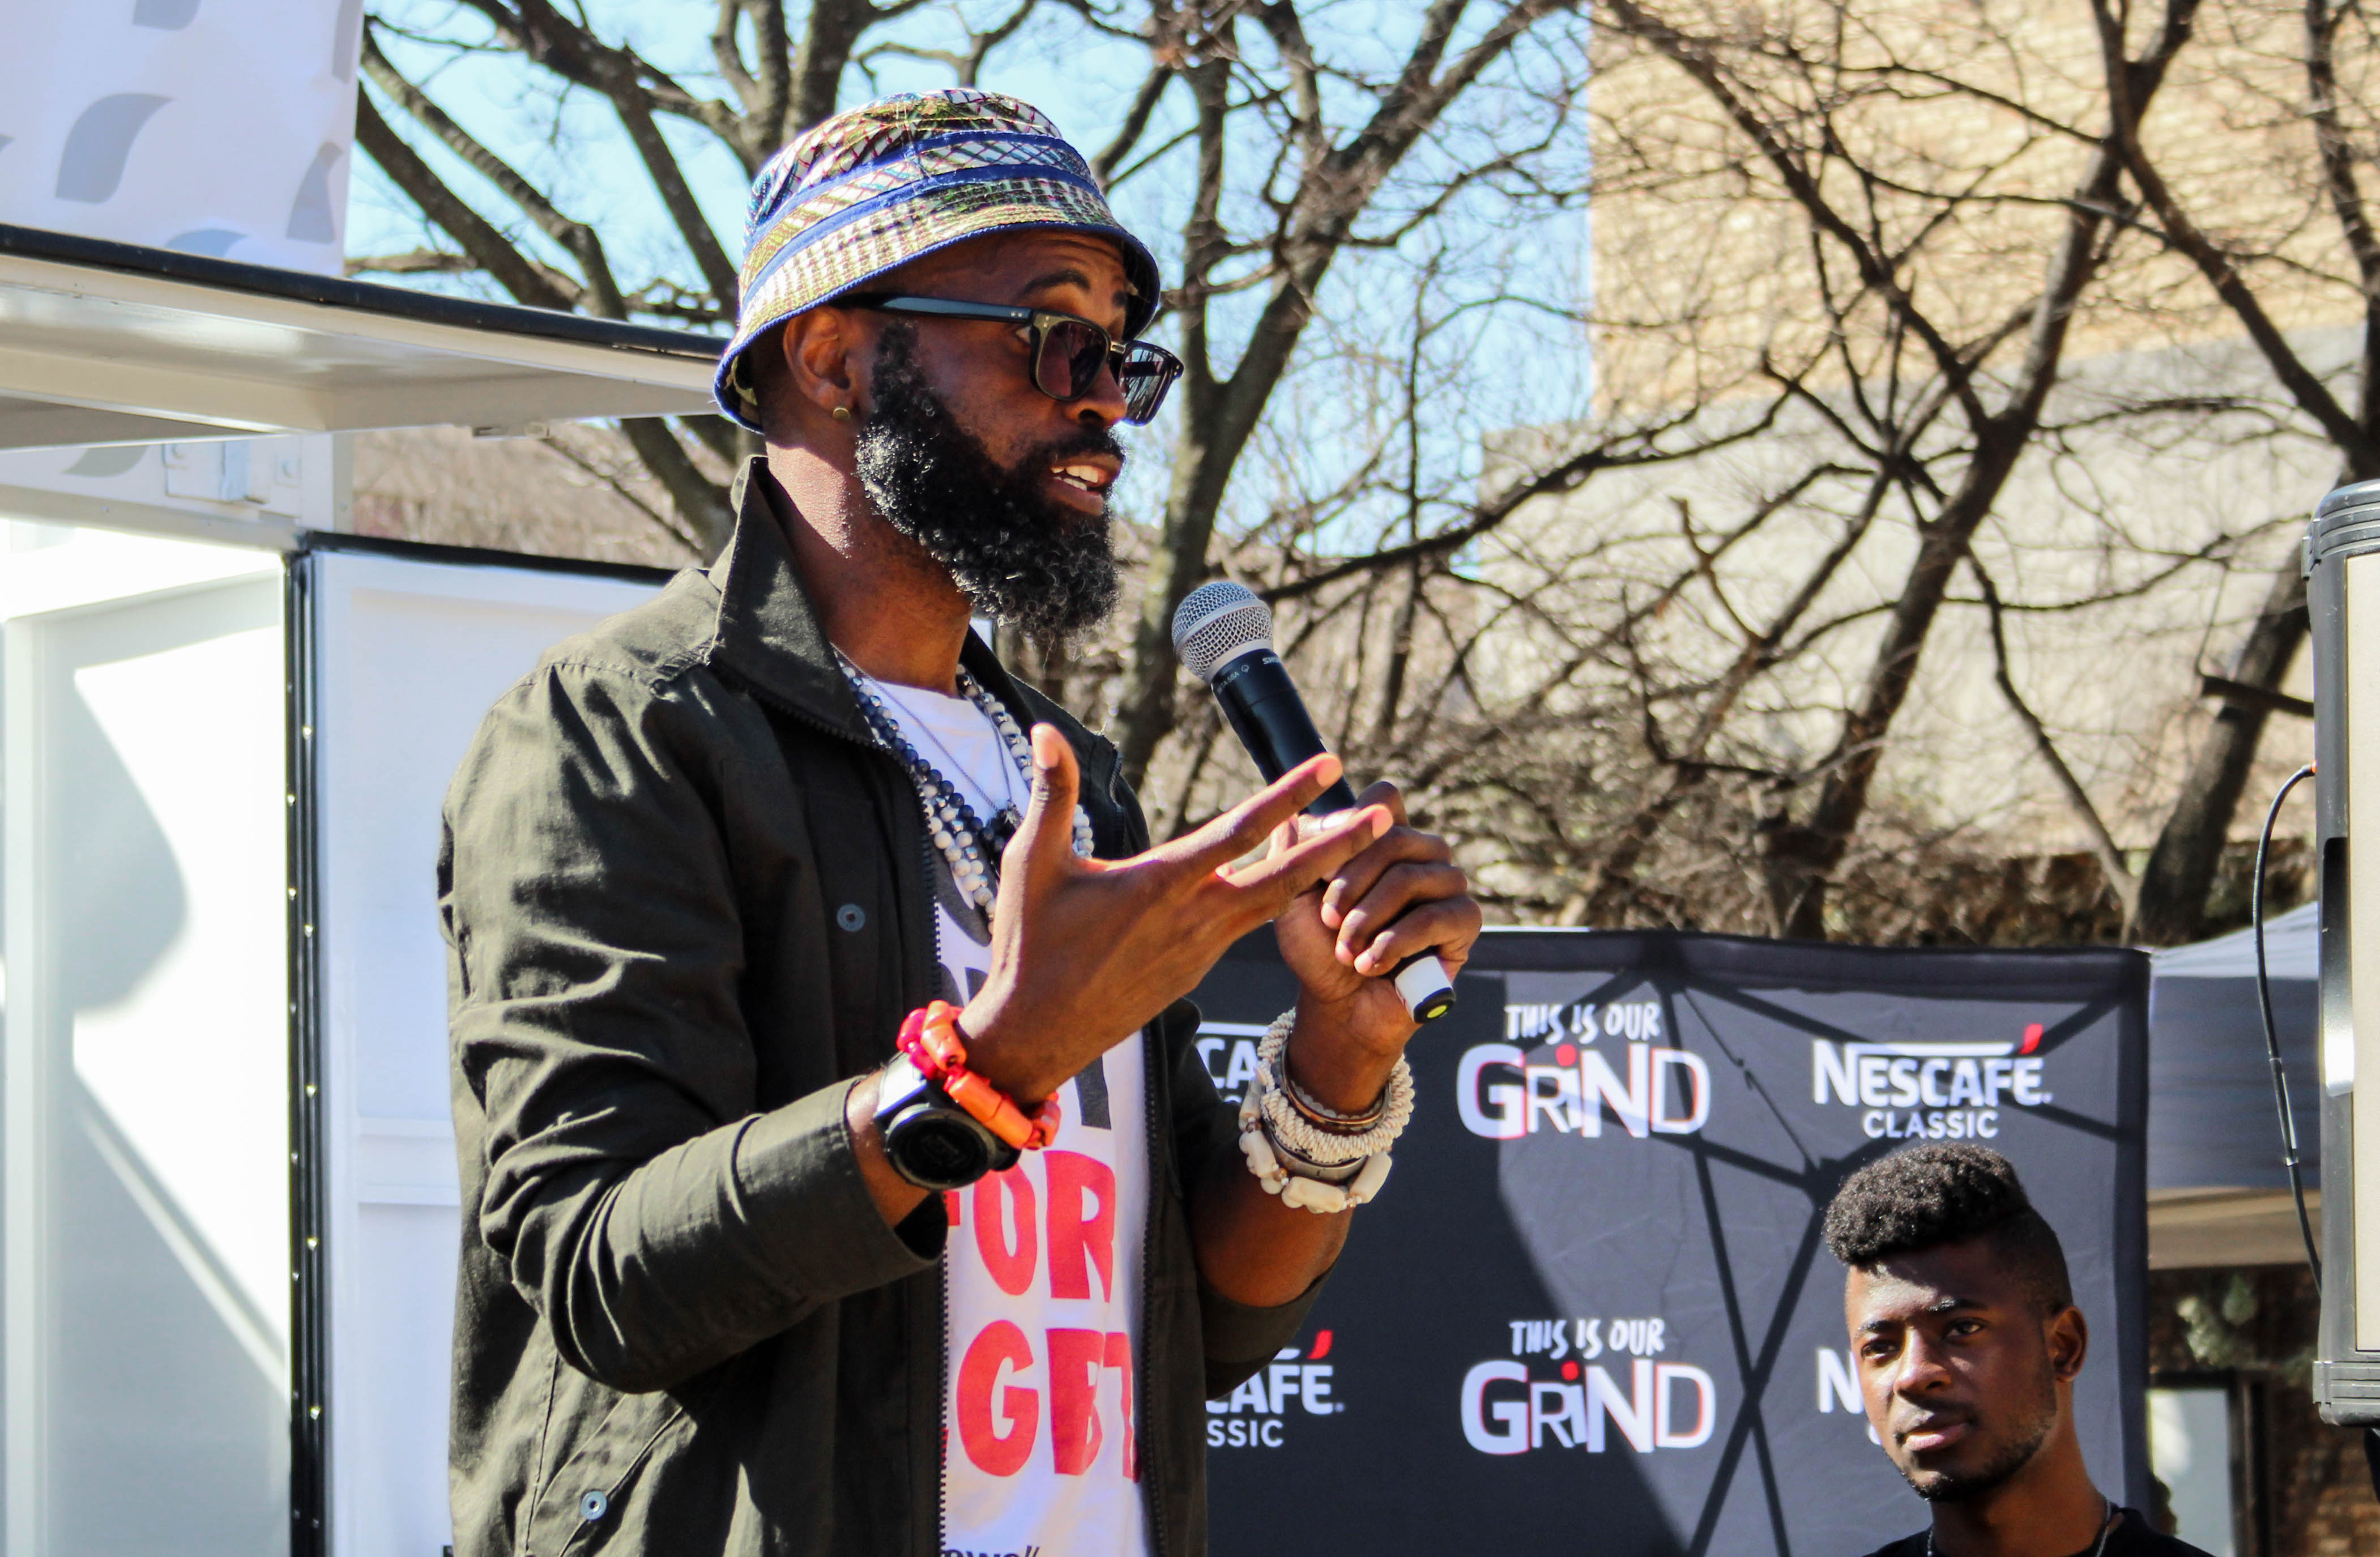 #ThisIsOurGrind: Here's what we learnt from google's CMO Mzamo Masito inspiring talk for #MandelaDay2019 with Nescafe